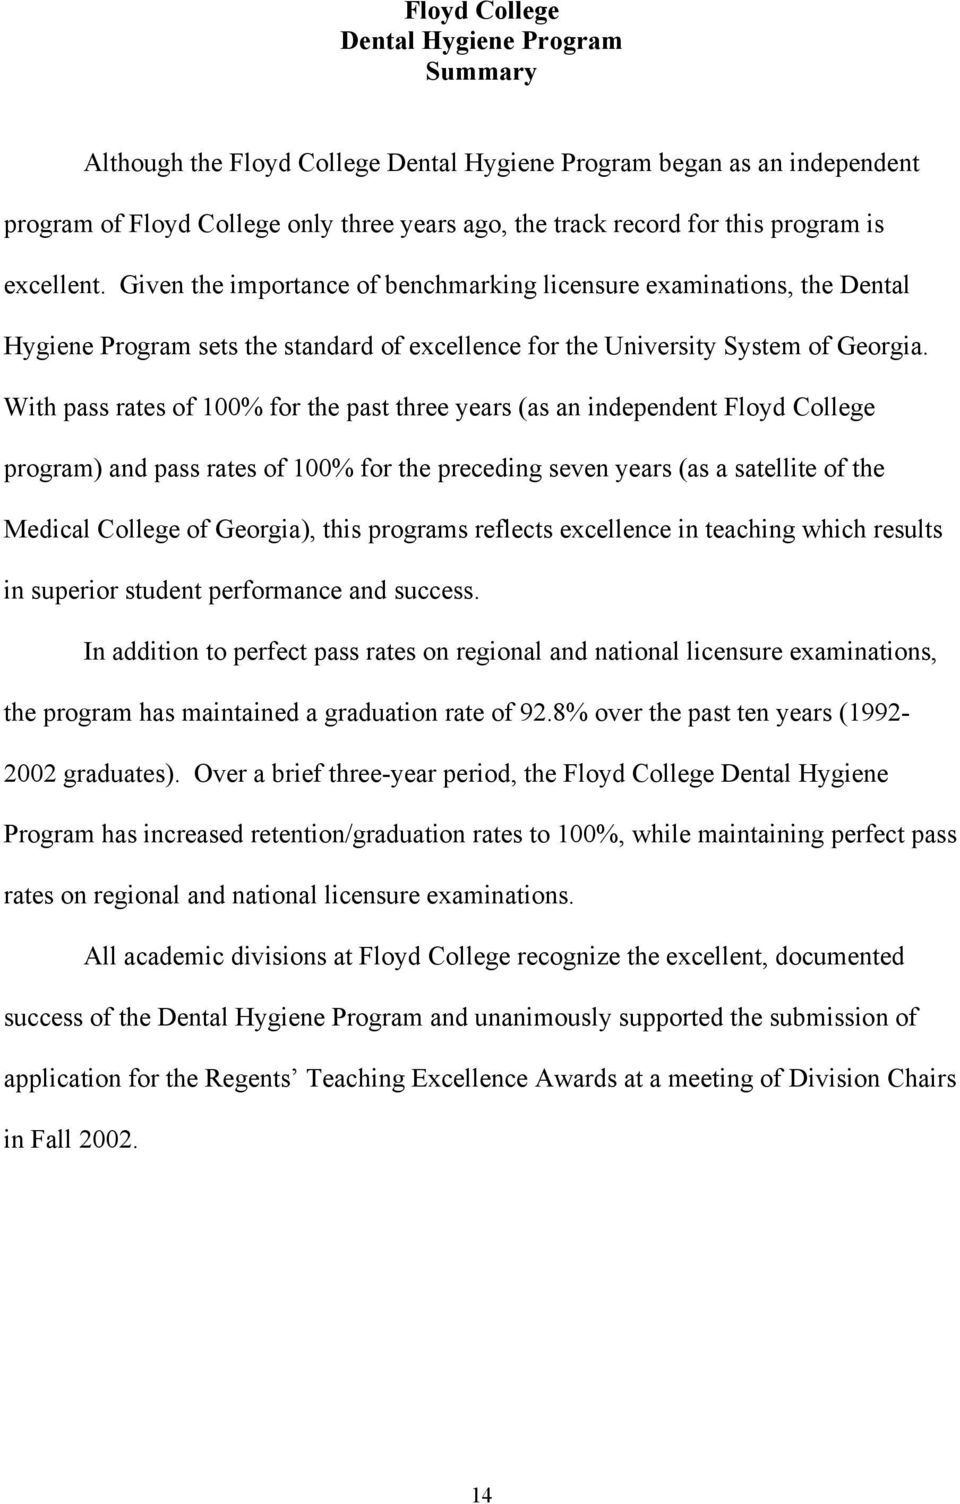 With pass rates of 100% for the past three years (as an independent Floyd College program) and pass rates of 100% for the preceding seven years (as a satellite of the Medical College of Georgia),